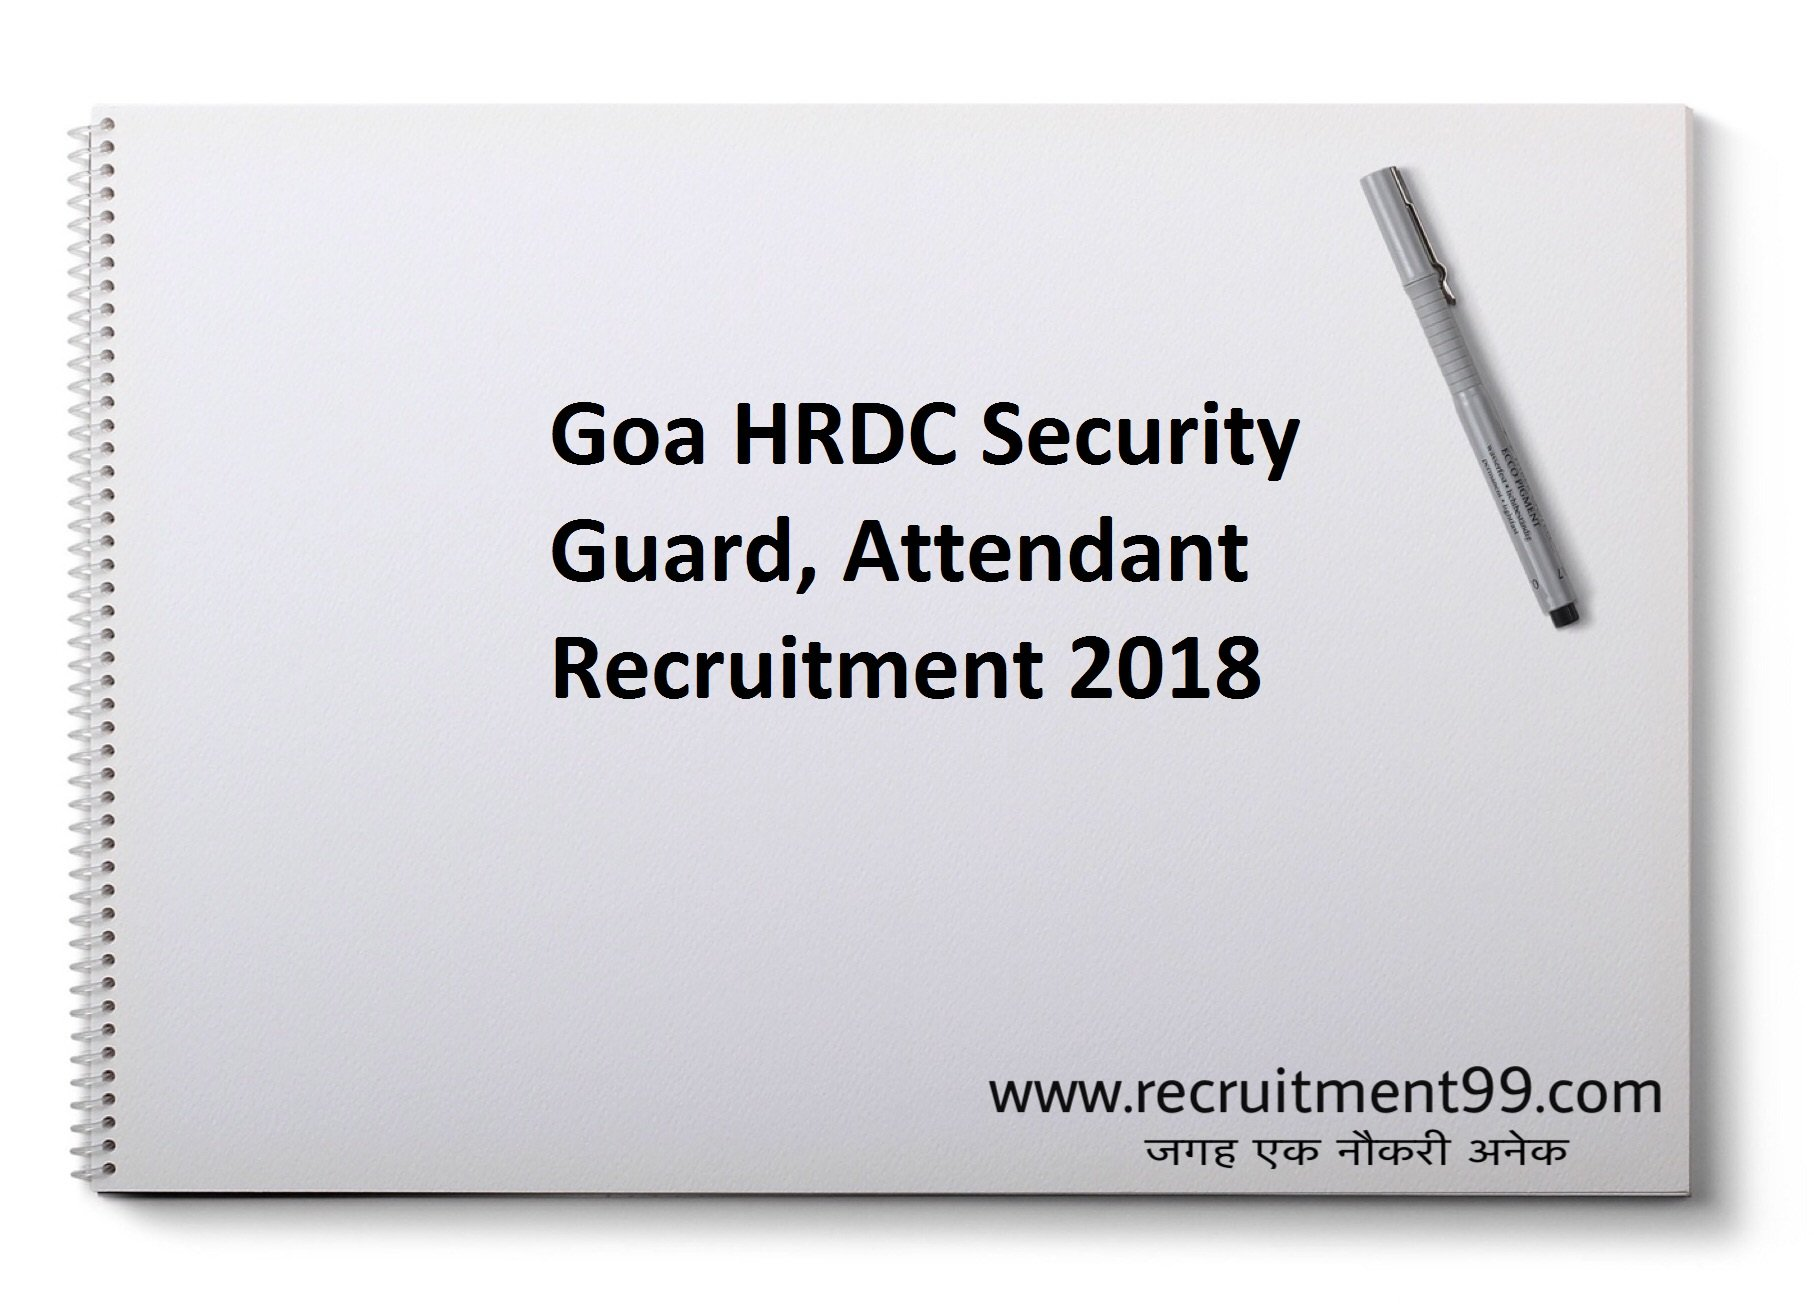 GHRDC Security Guard Attendant Recruitment Admit Card Result 2018